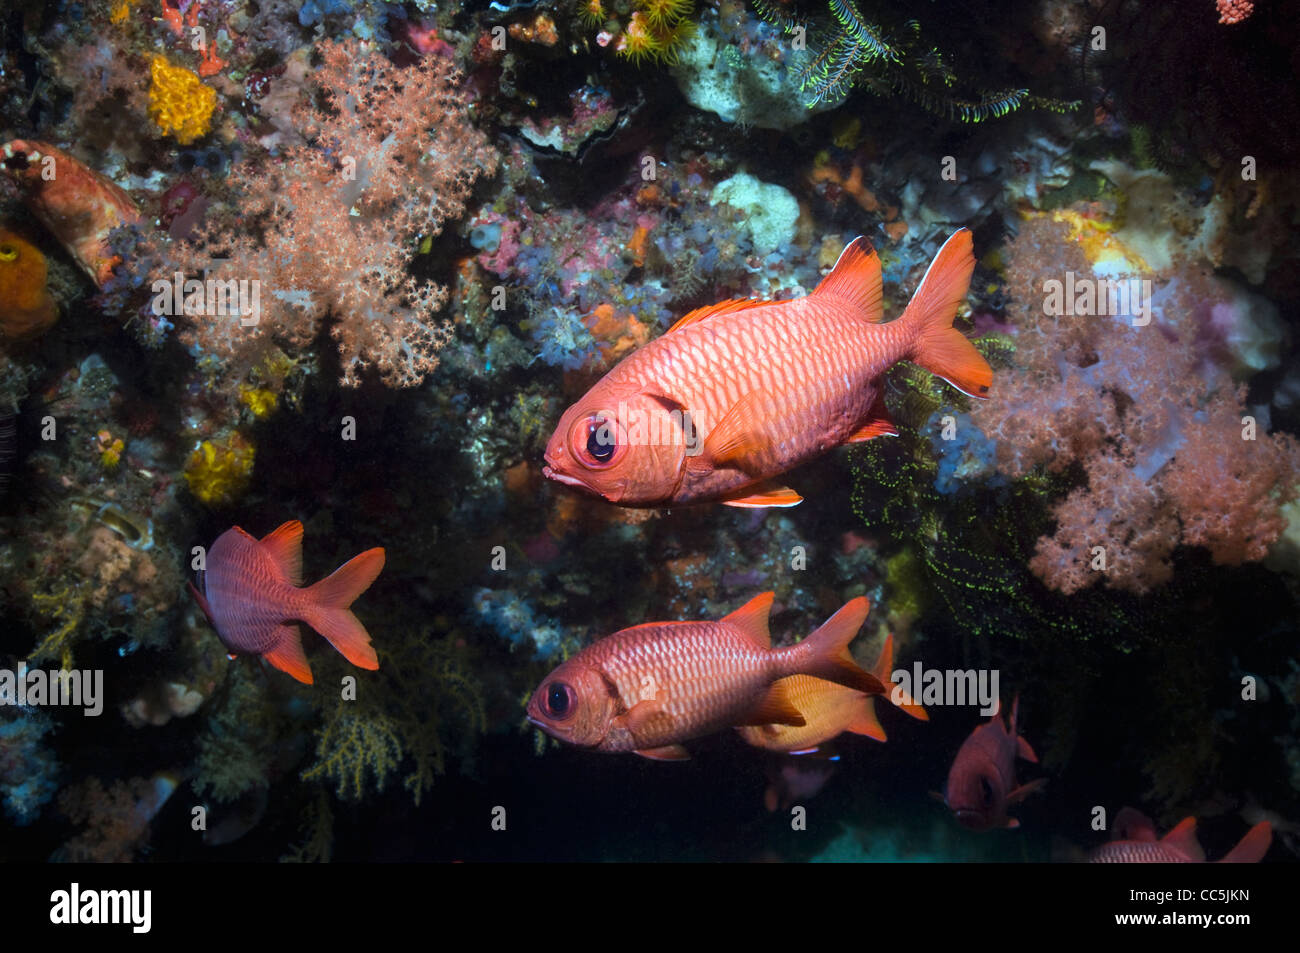 Bigscale soldierfish with swimming past coral reef wall - Stock Image